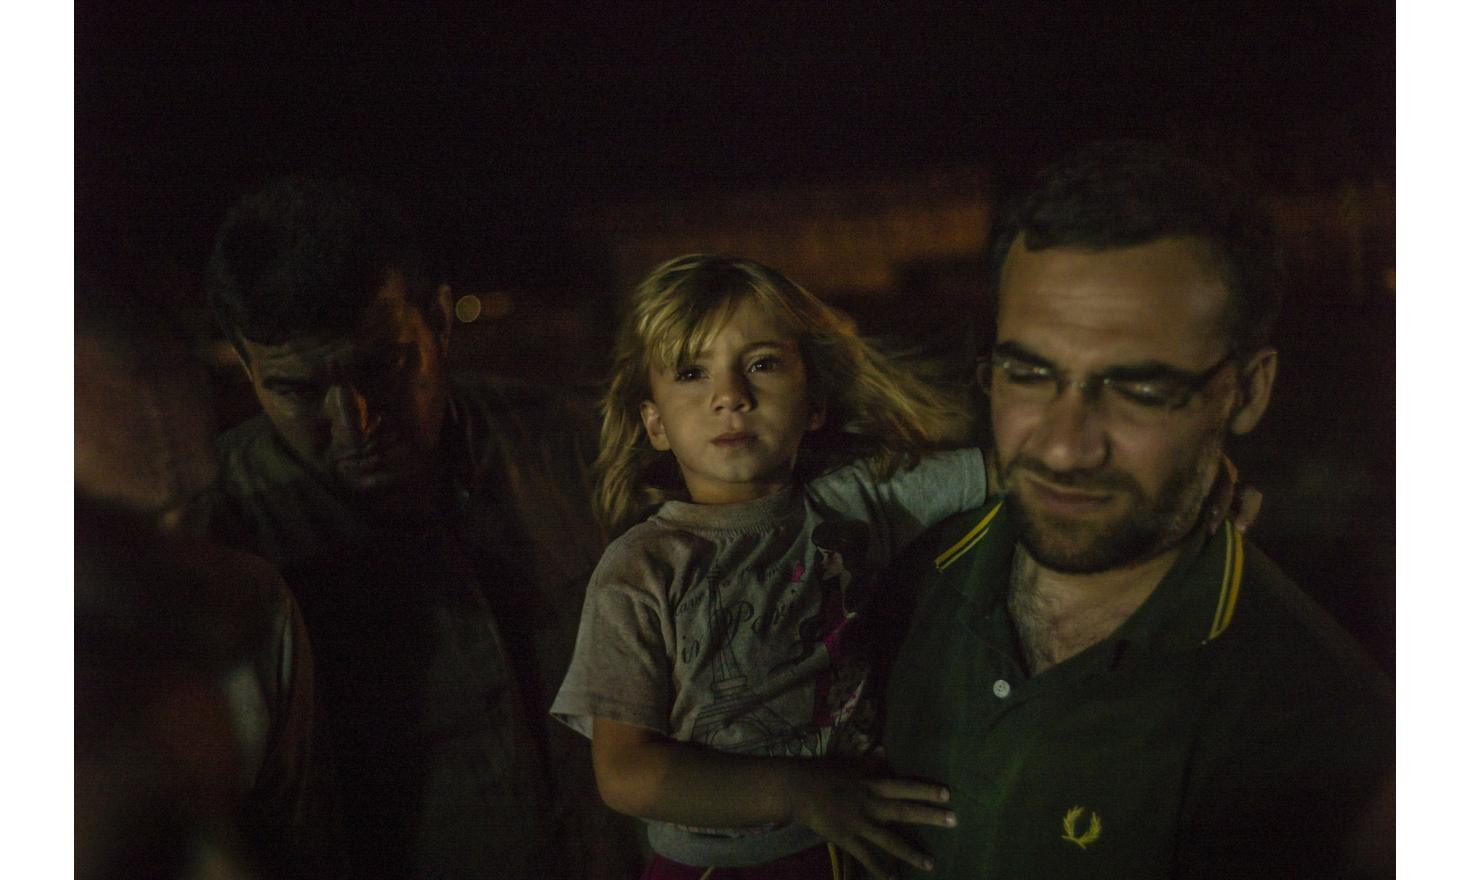 Refugees from Aleppo at the Turkisk border